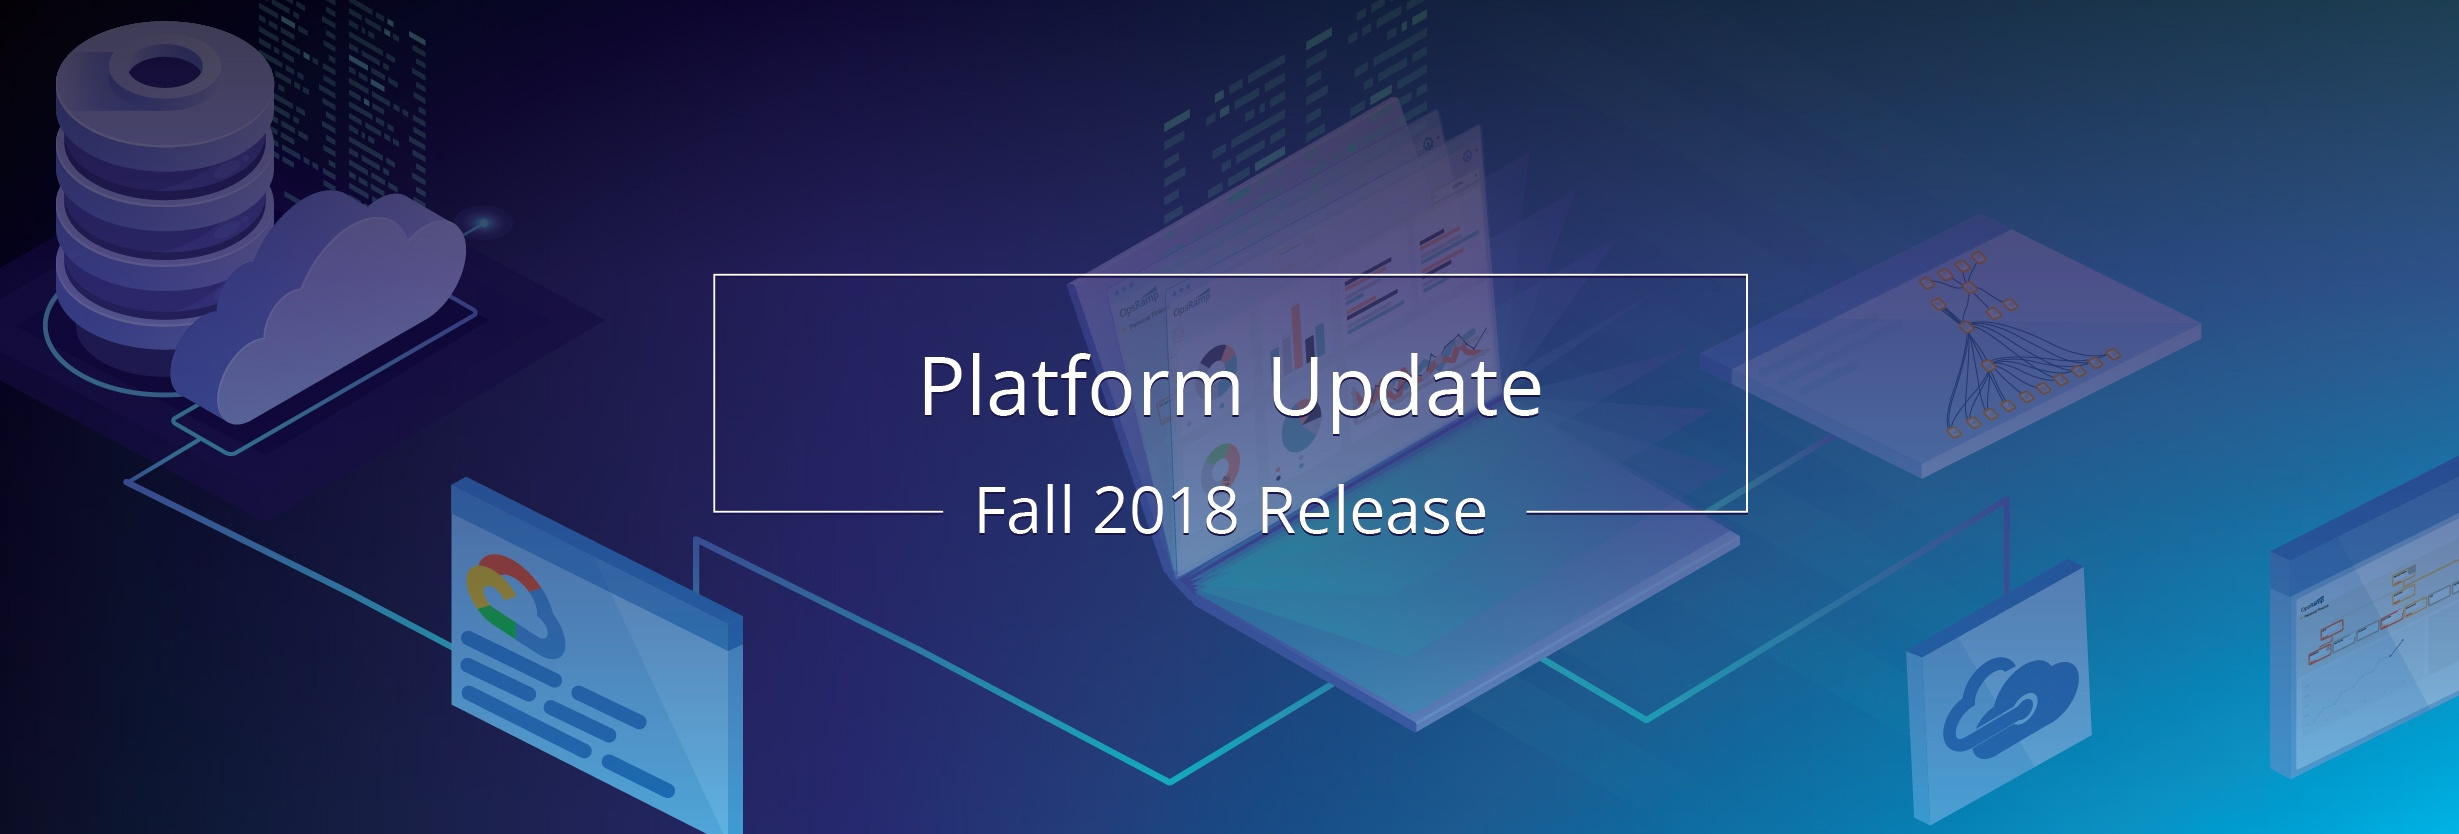 OpsRamp Fall 2018 Release: Support Digital Transformation With Agile IT Operations